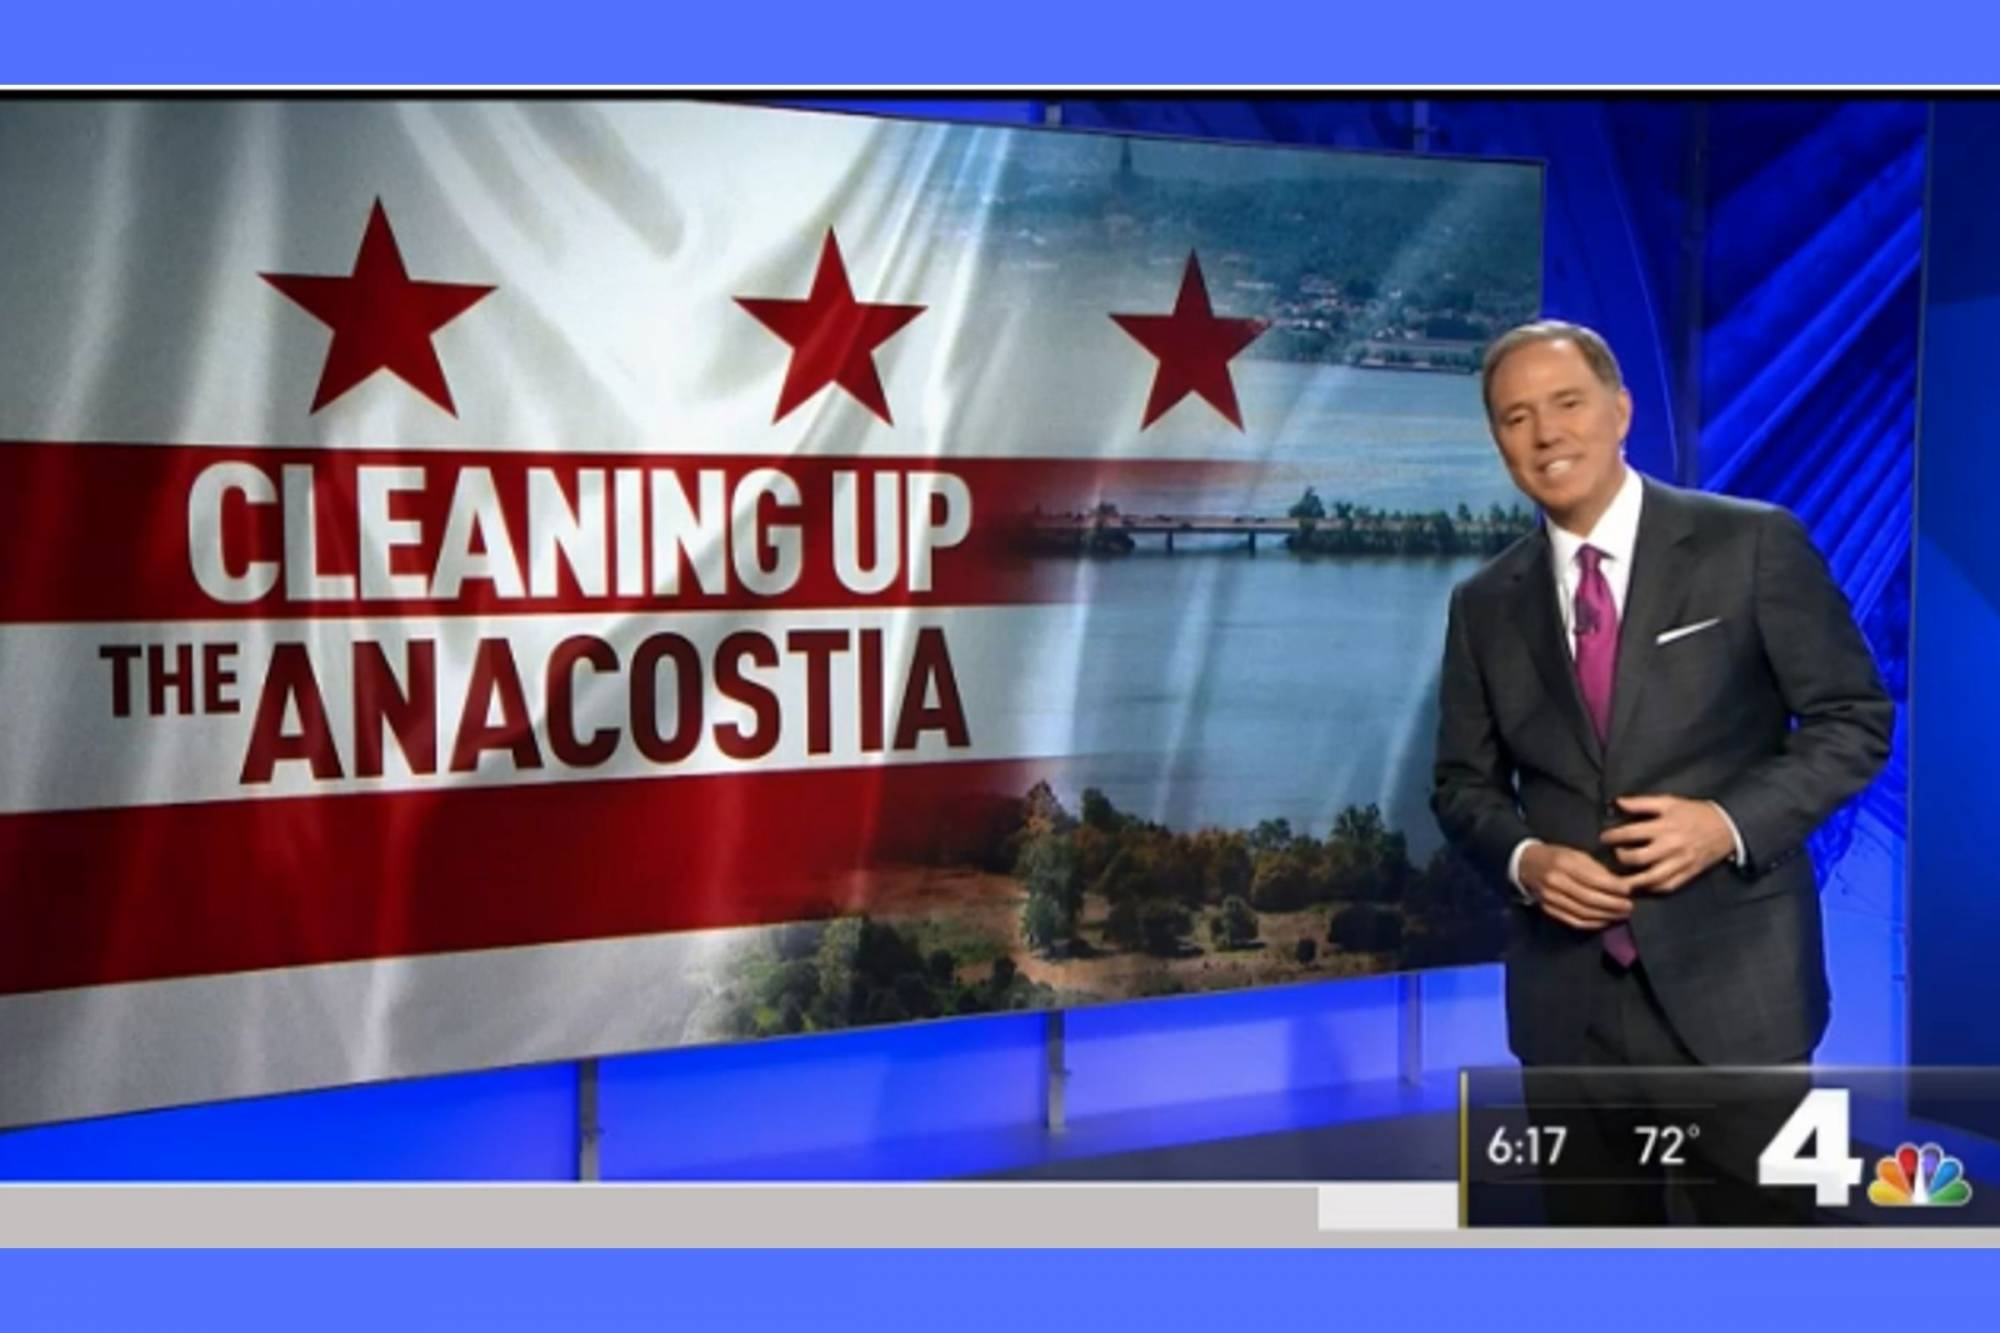 NBC4 - Mussel Power: Thousands of Mollusks Dropped Into Anacostia River to Clean it Up